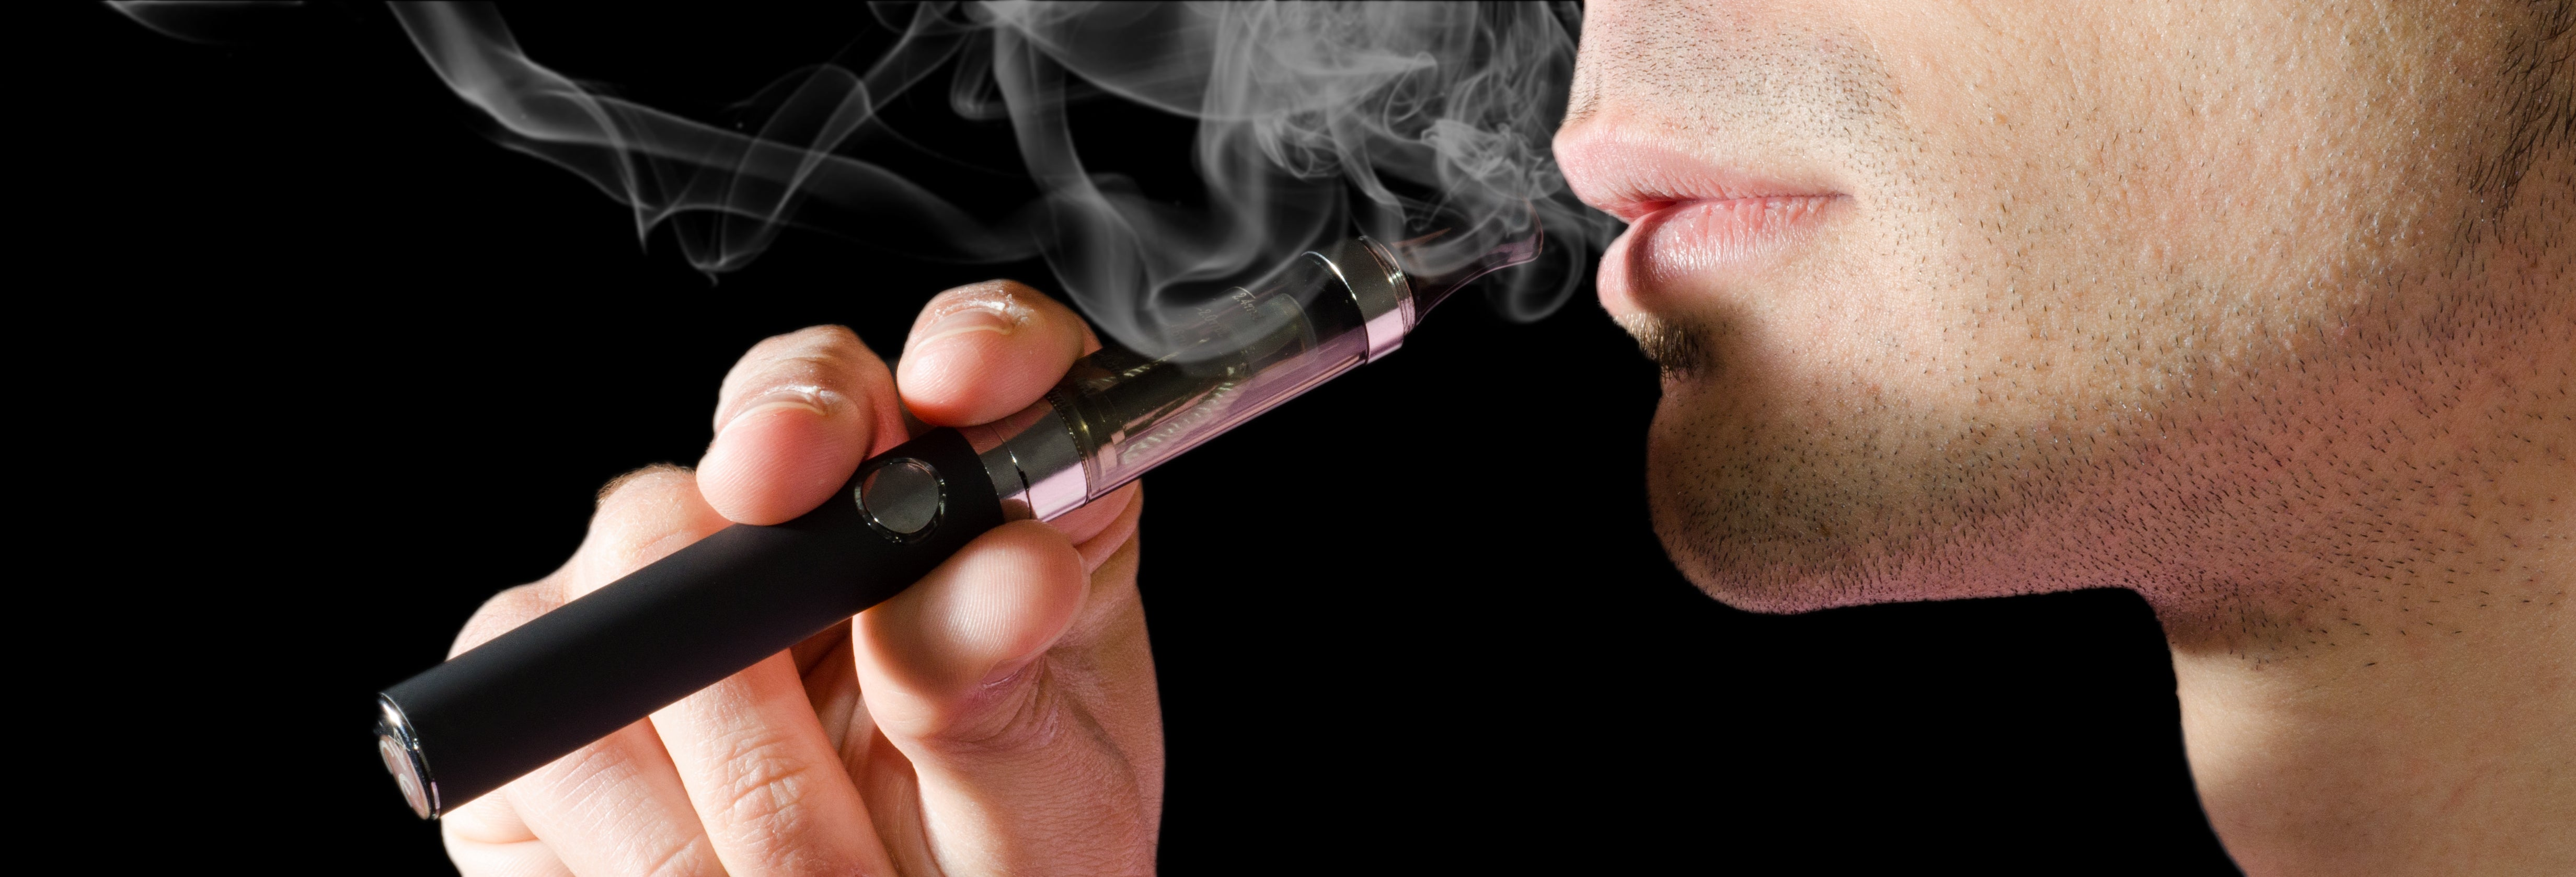 Vaping Study Proves Value In Vaping